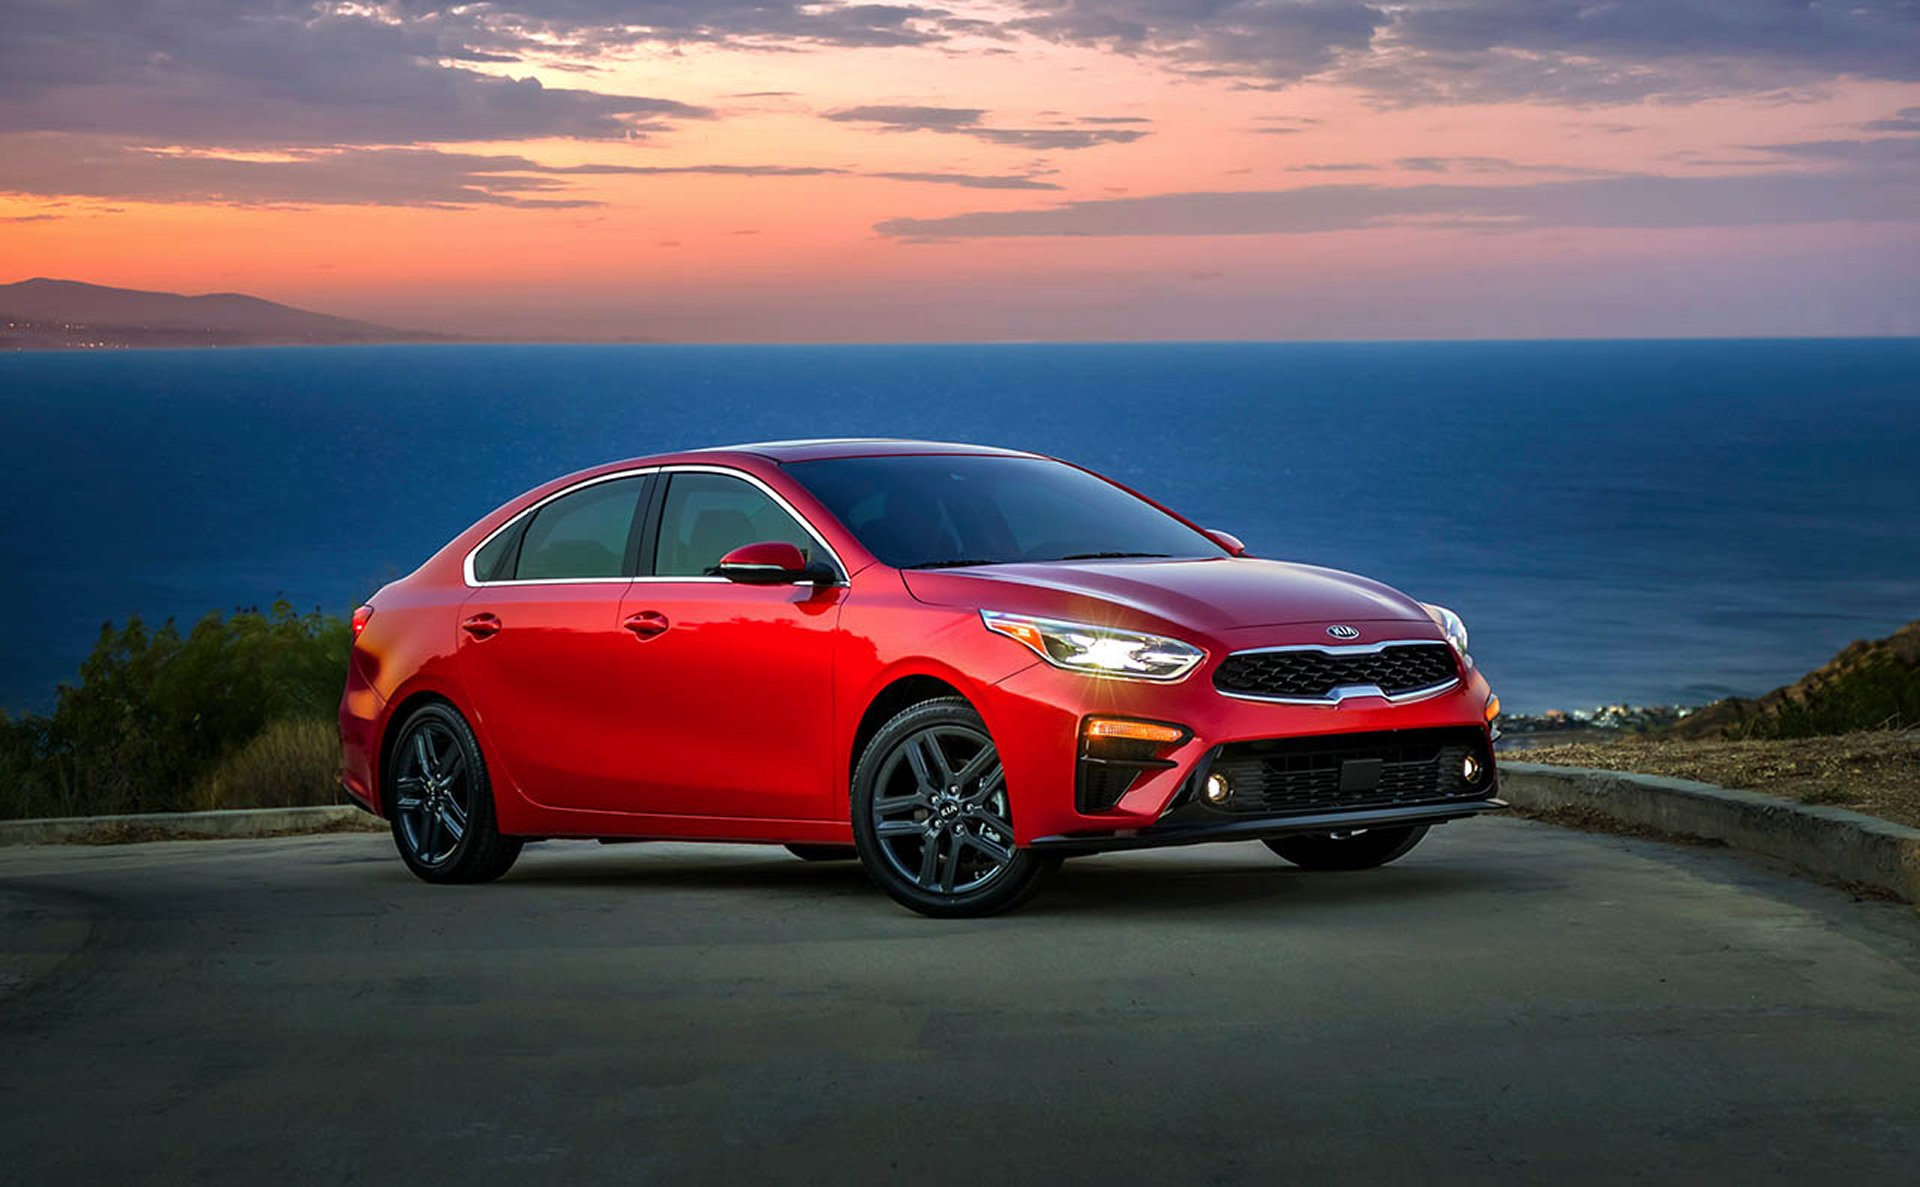 2019 Kia Forte Financing in Houston, TX